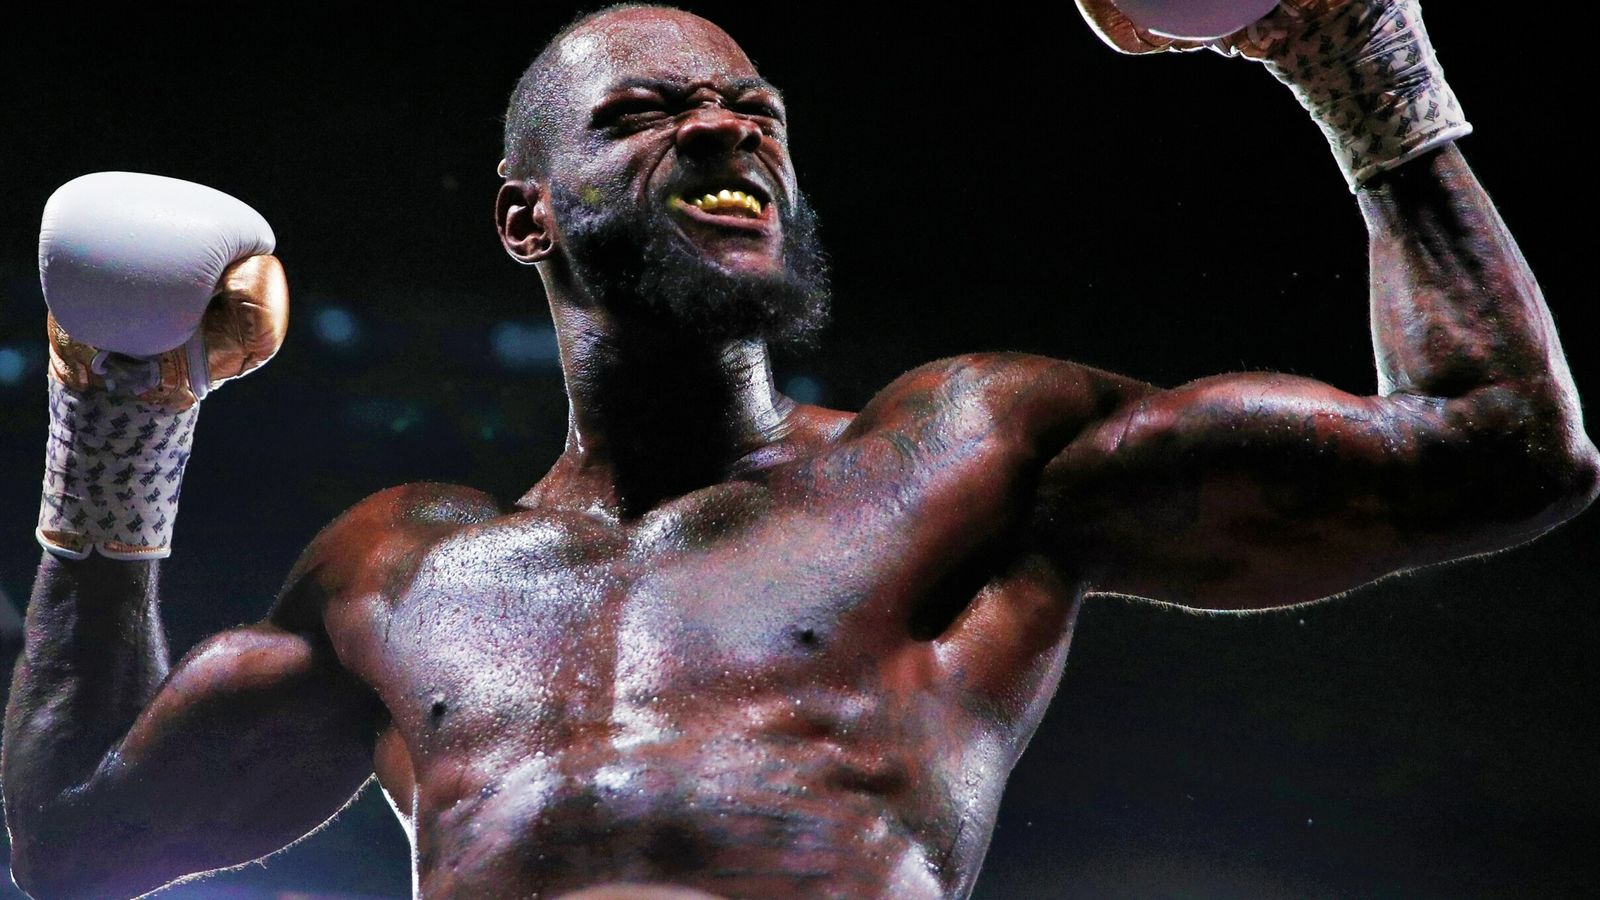 Deontay Wilder says Anthony Joshua is 'making excuses' but vowed to defeat the British star in 'devastating fashion'